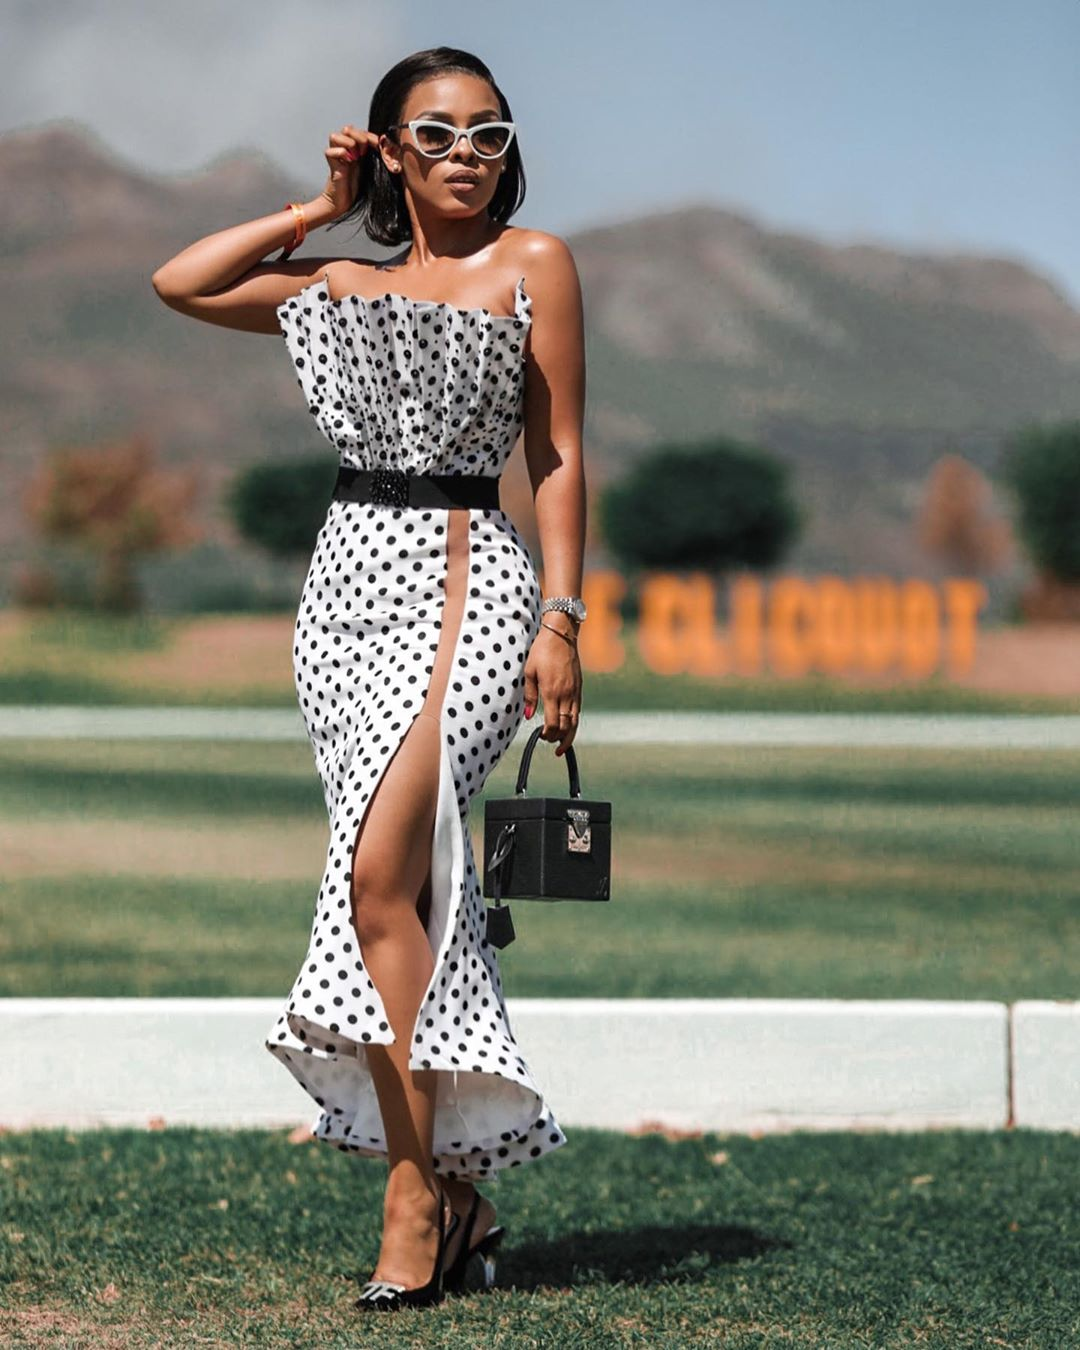 veuve-clicquot-polo-series-vcpoloseries-amvca-nominations-the-most-rave-worthy-looks-on-women-across-africa-march-1st